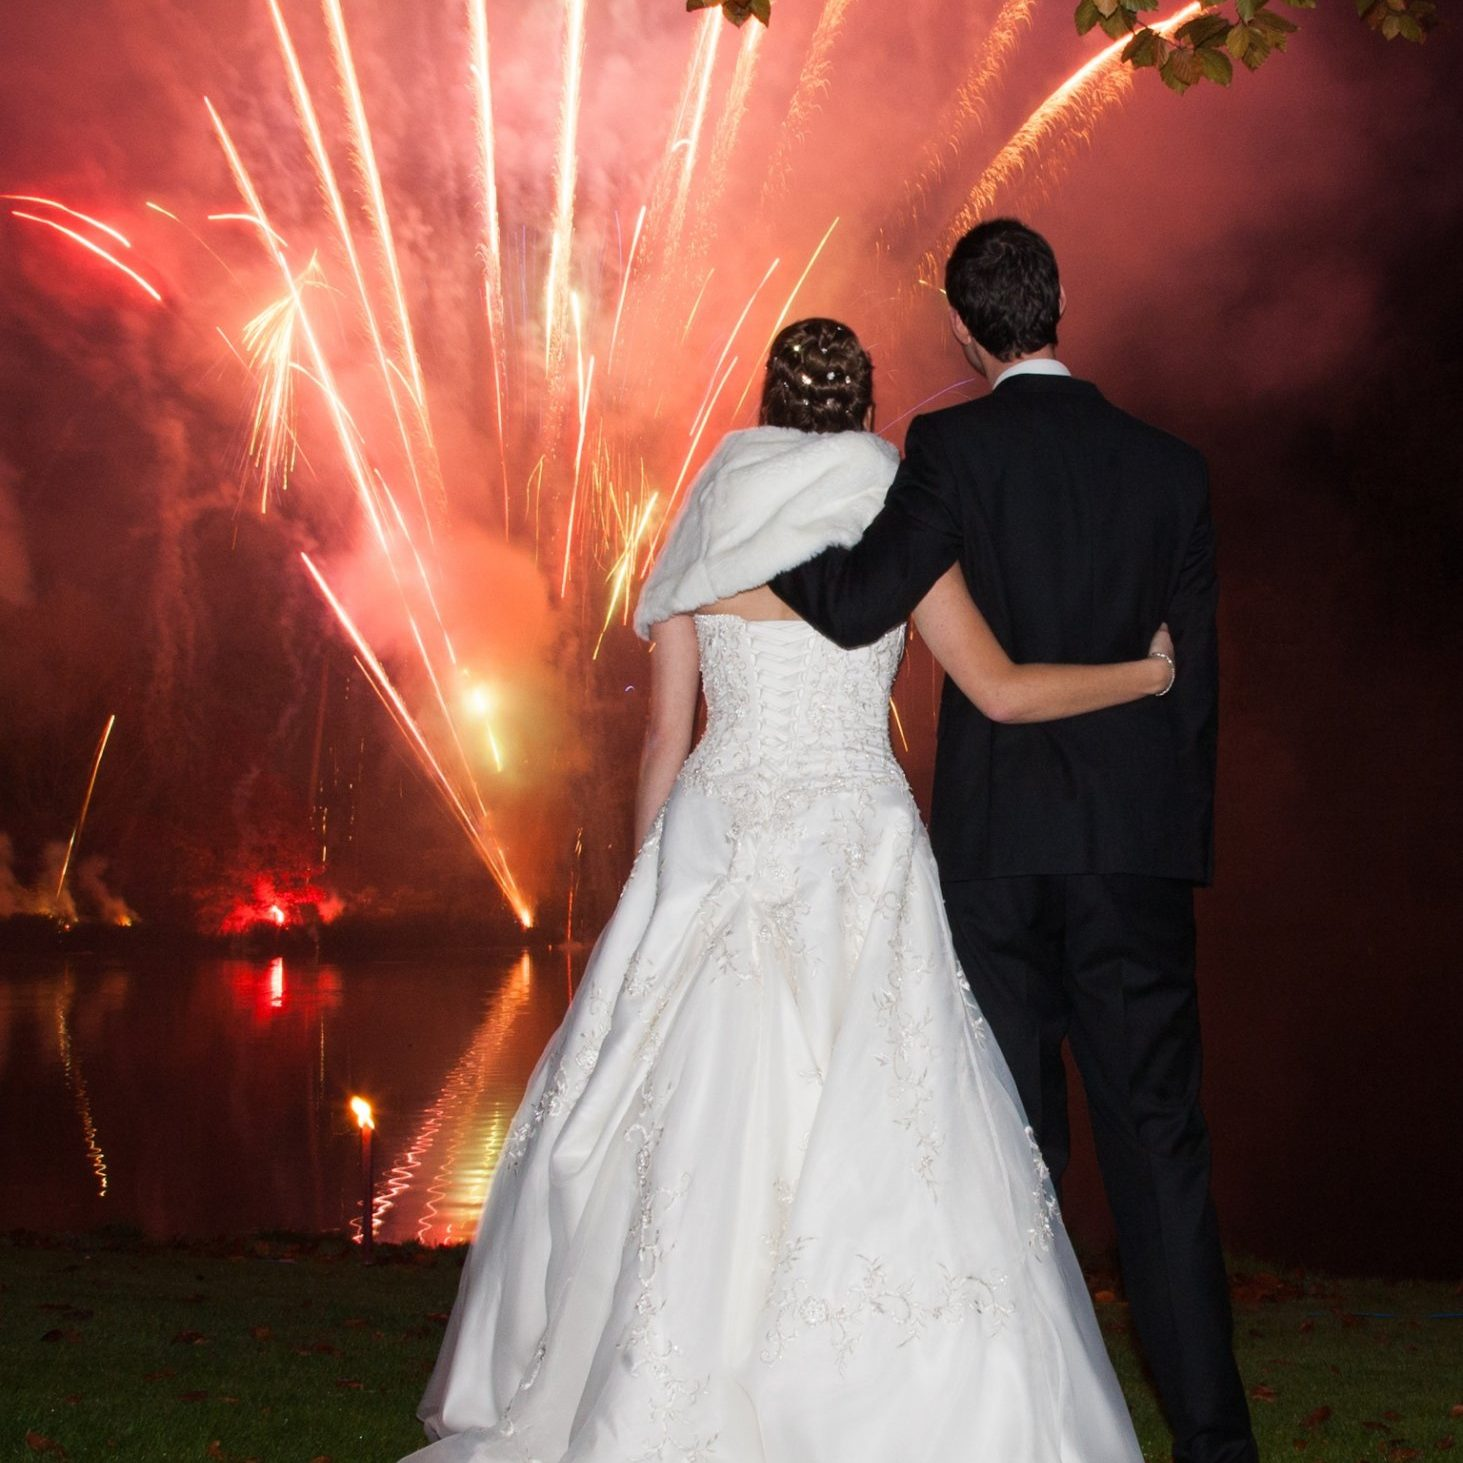 Wedding Fireworks Display Special Effects (SPX) Stage Pyro by Angelfire